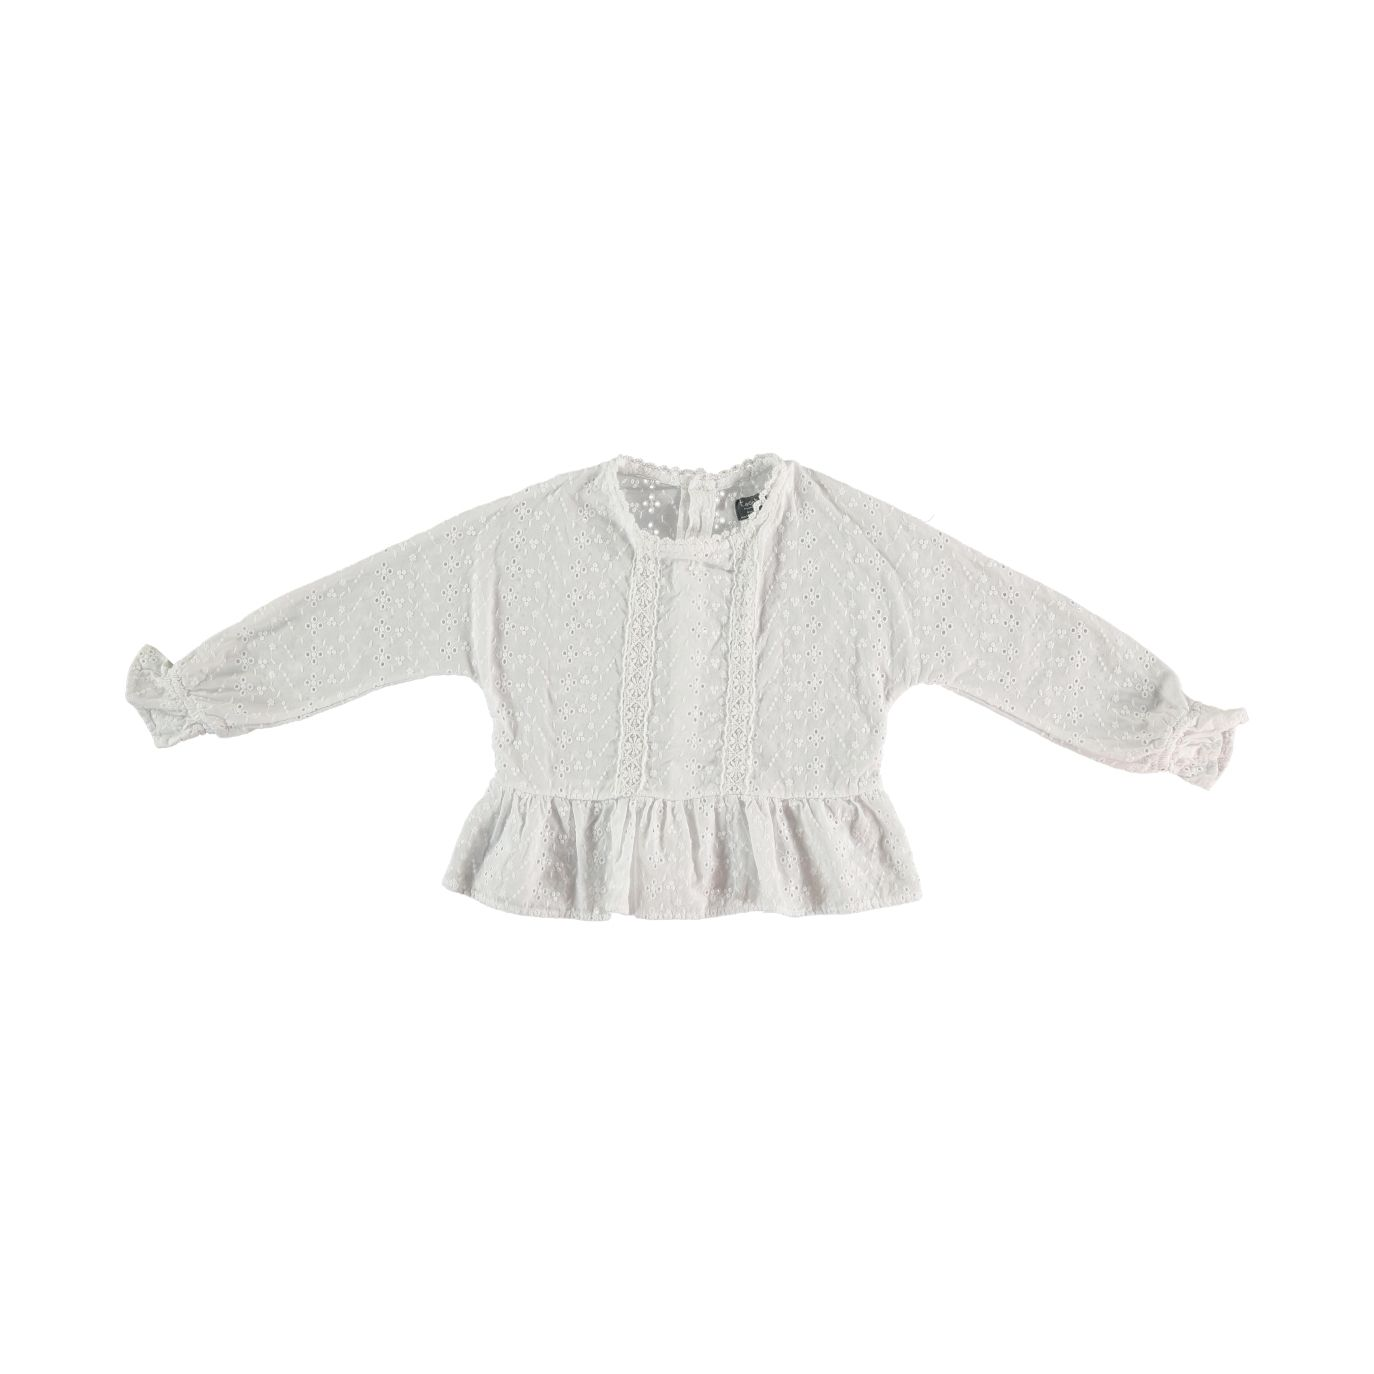 Swiss embroidered long sleeved blouse with lace and flounced hem